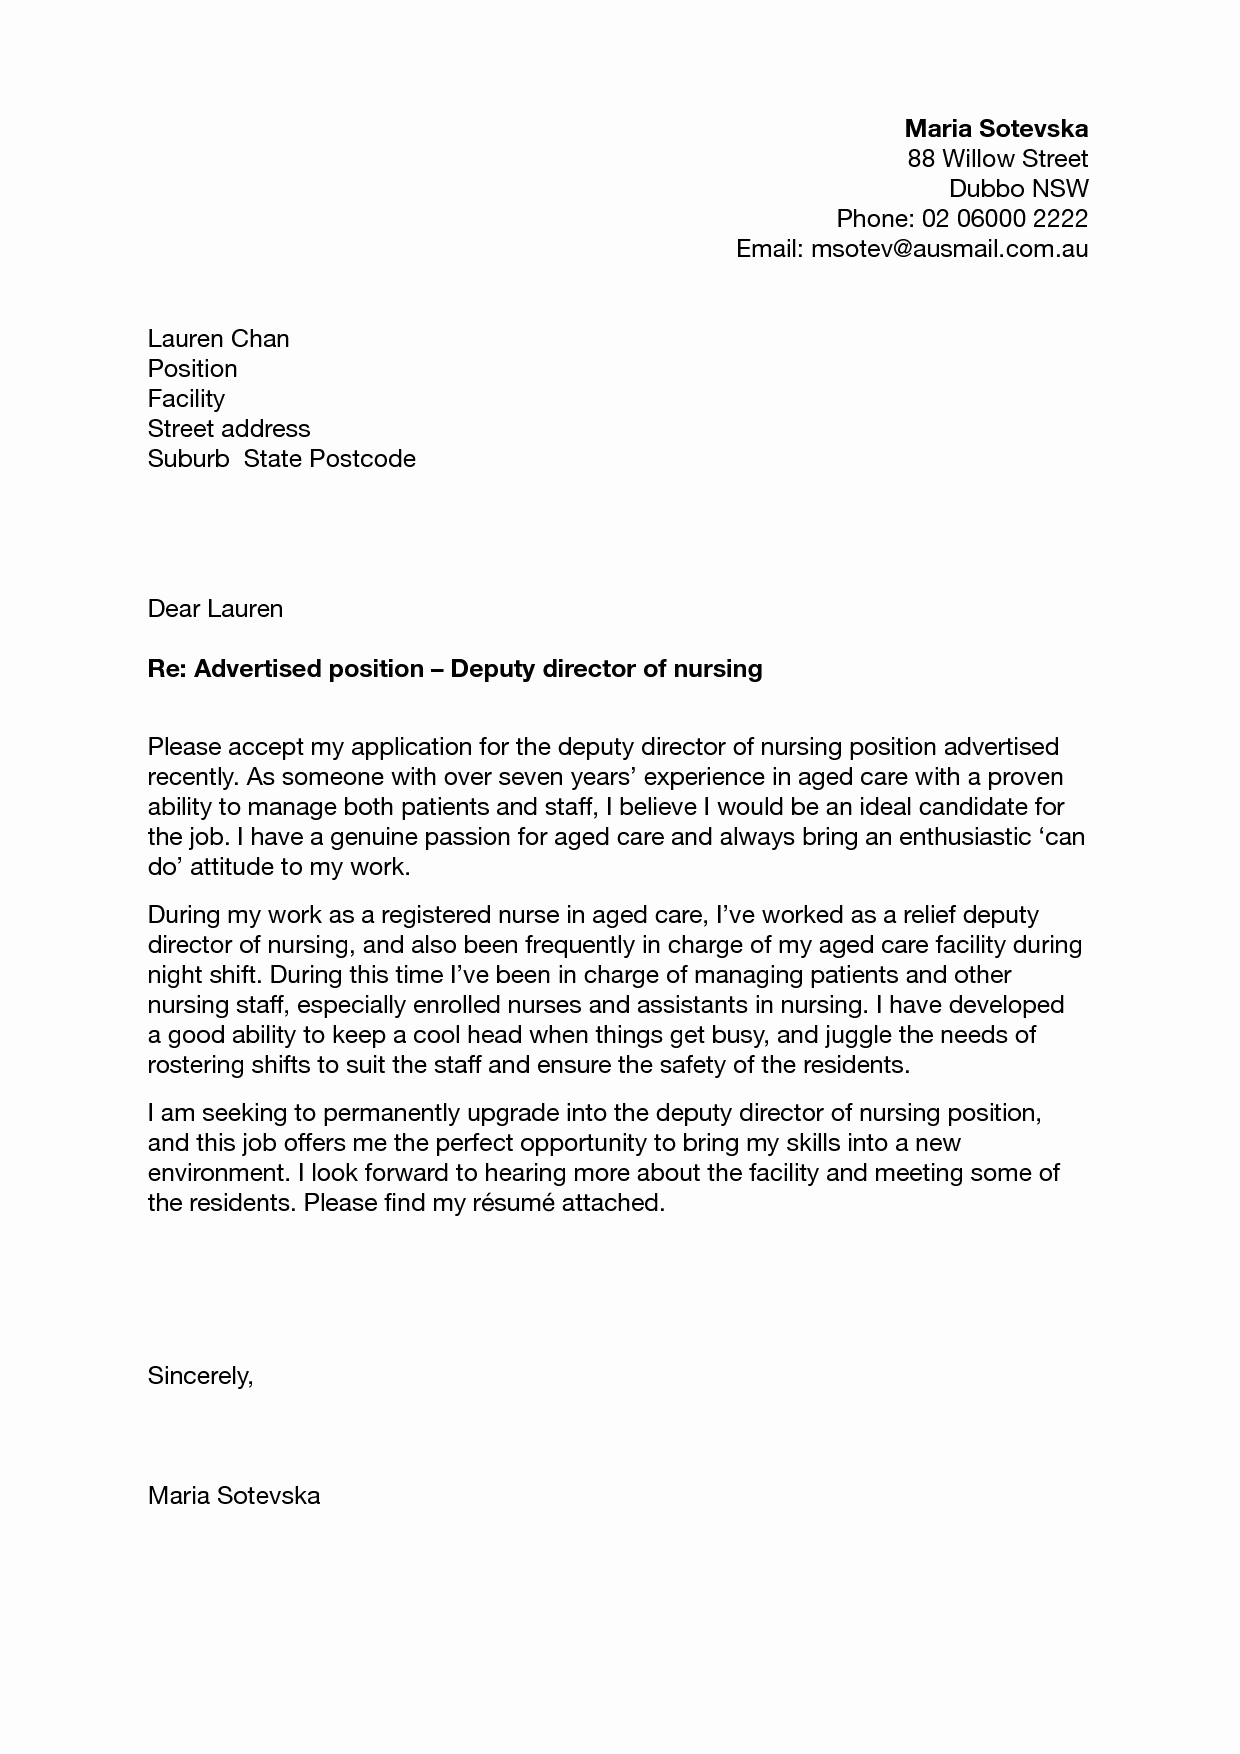 Demotion Letter Template - Voluntary Demotion Letter Template Unique Employee Demotion Letter